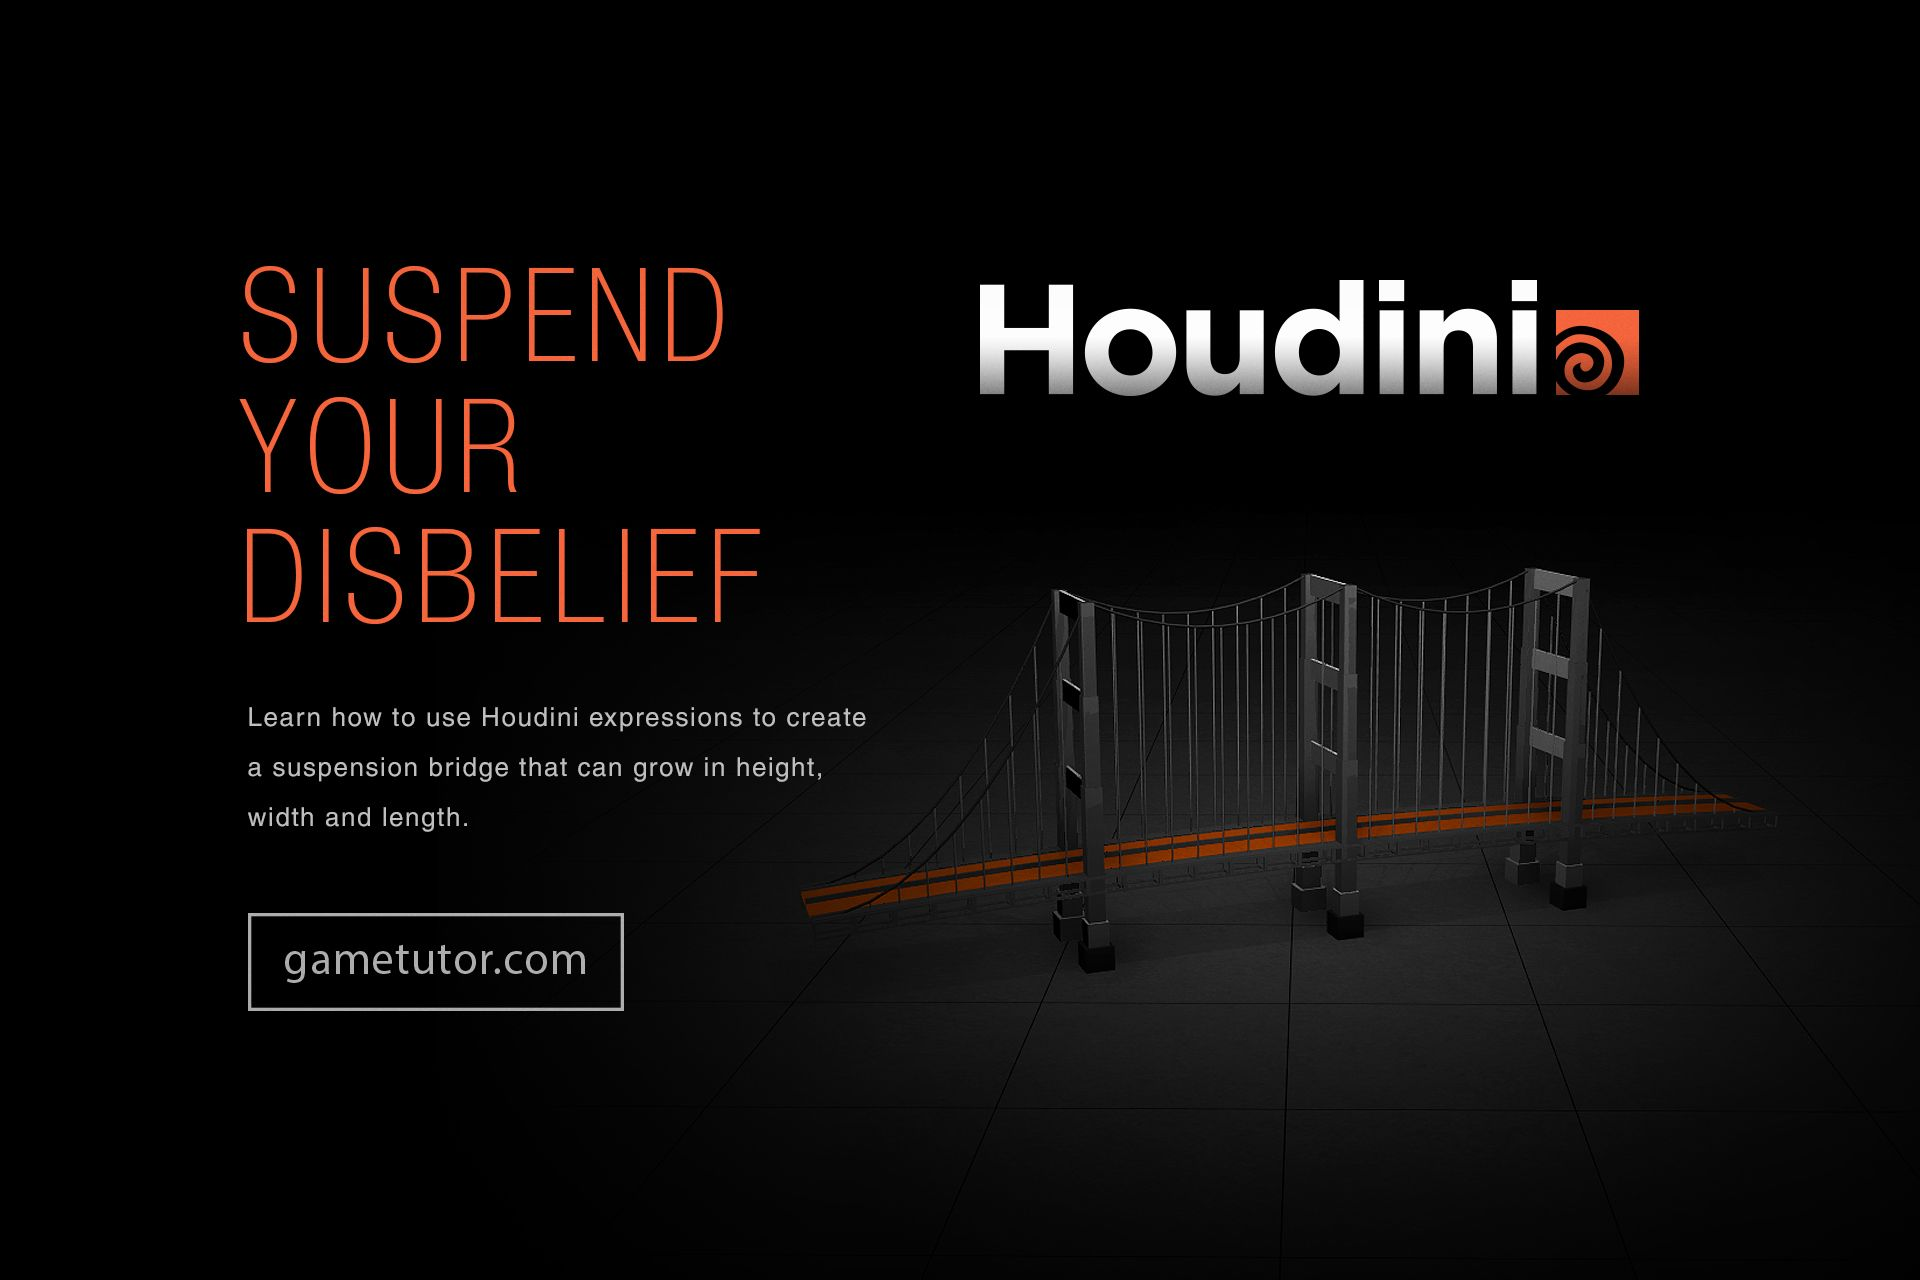 Learn how to use Houdini expressions to create a suspension